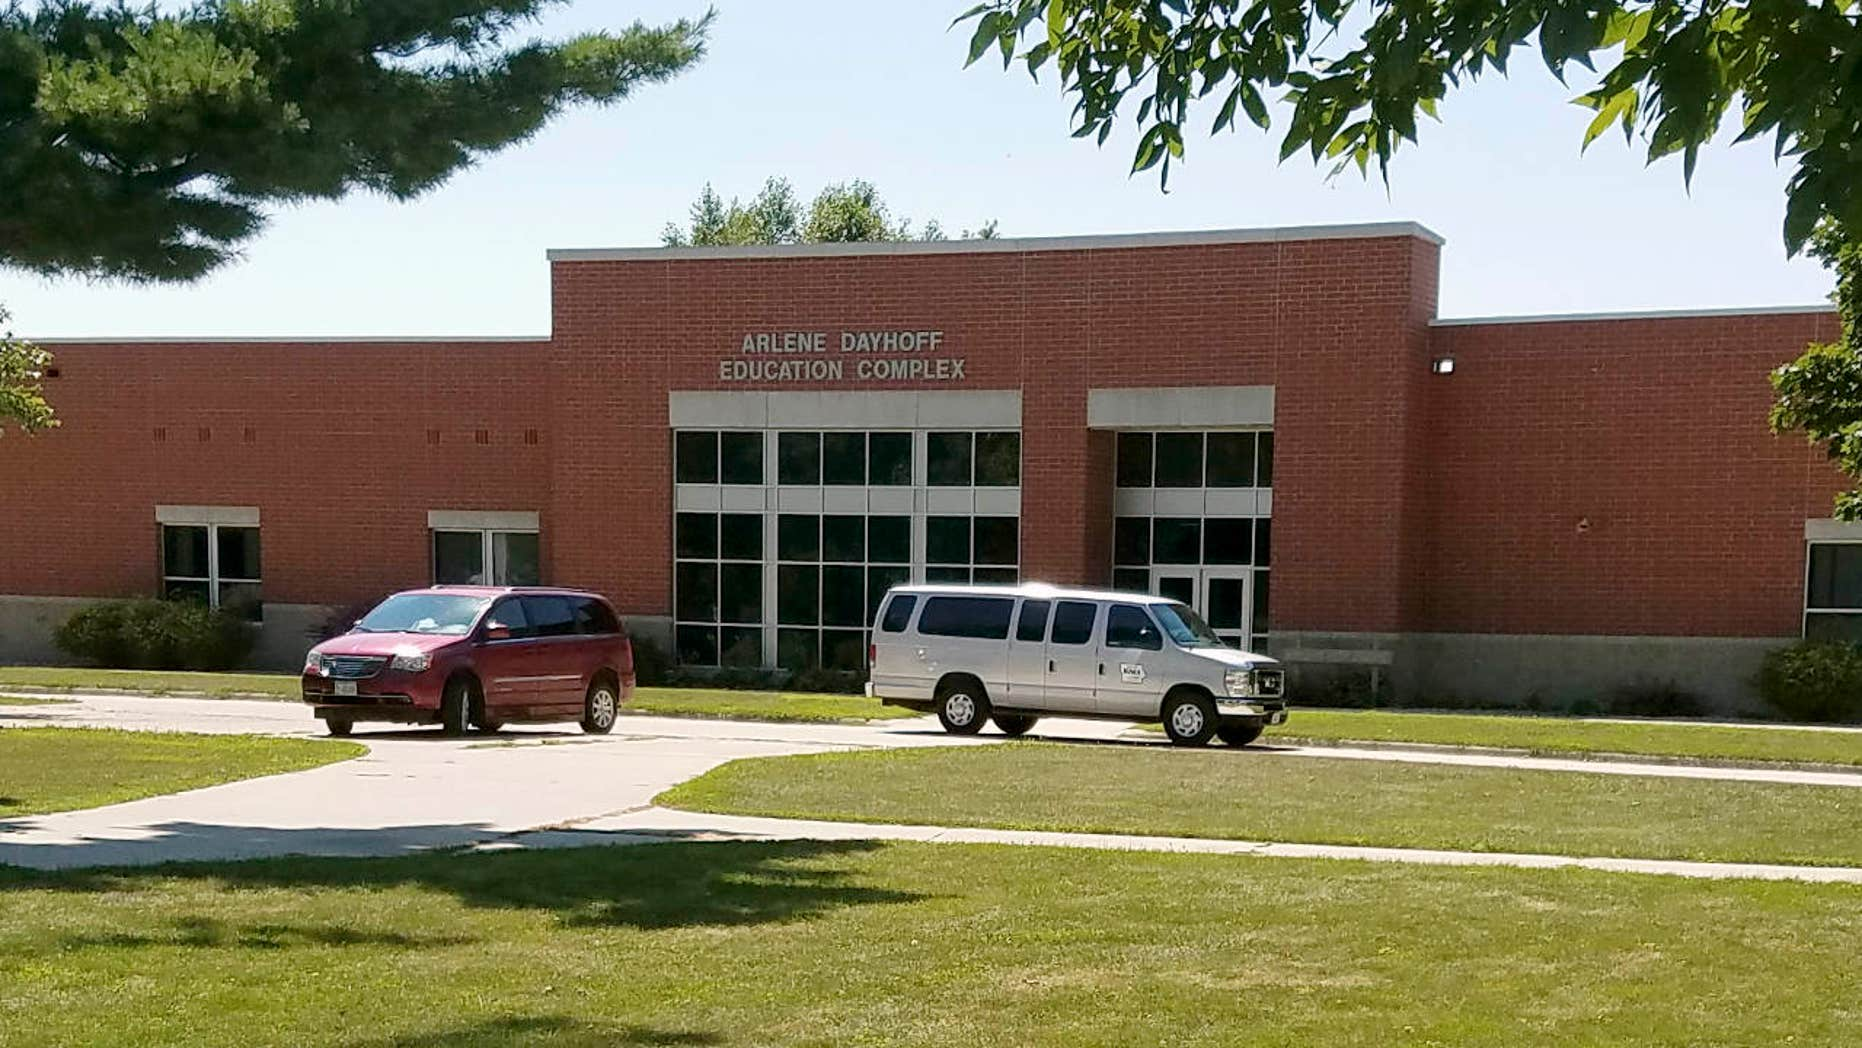 In this photo provided by the State of Iowa, vehicles are parked out the entrance to the Arlene Dayhoff Education Complex at the Boys State Training School in Eldora, Iowa, Monday, Aug. 7, 2017.